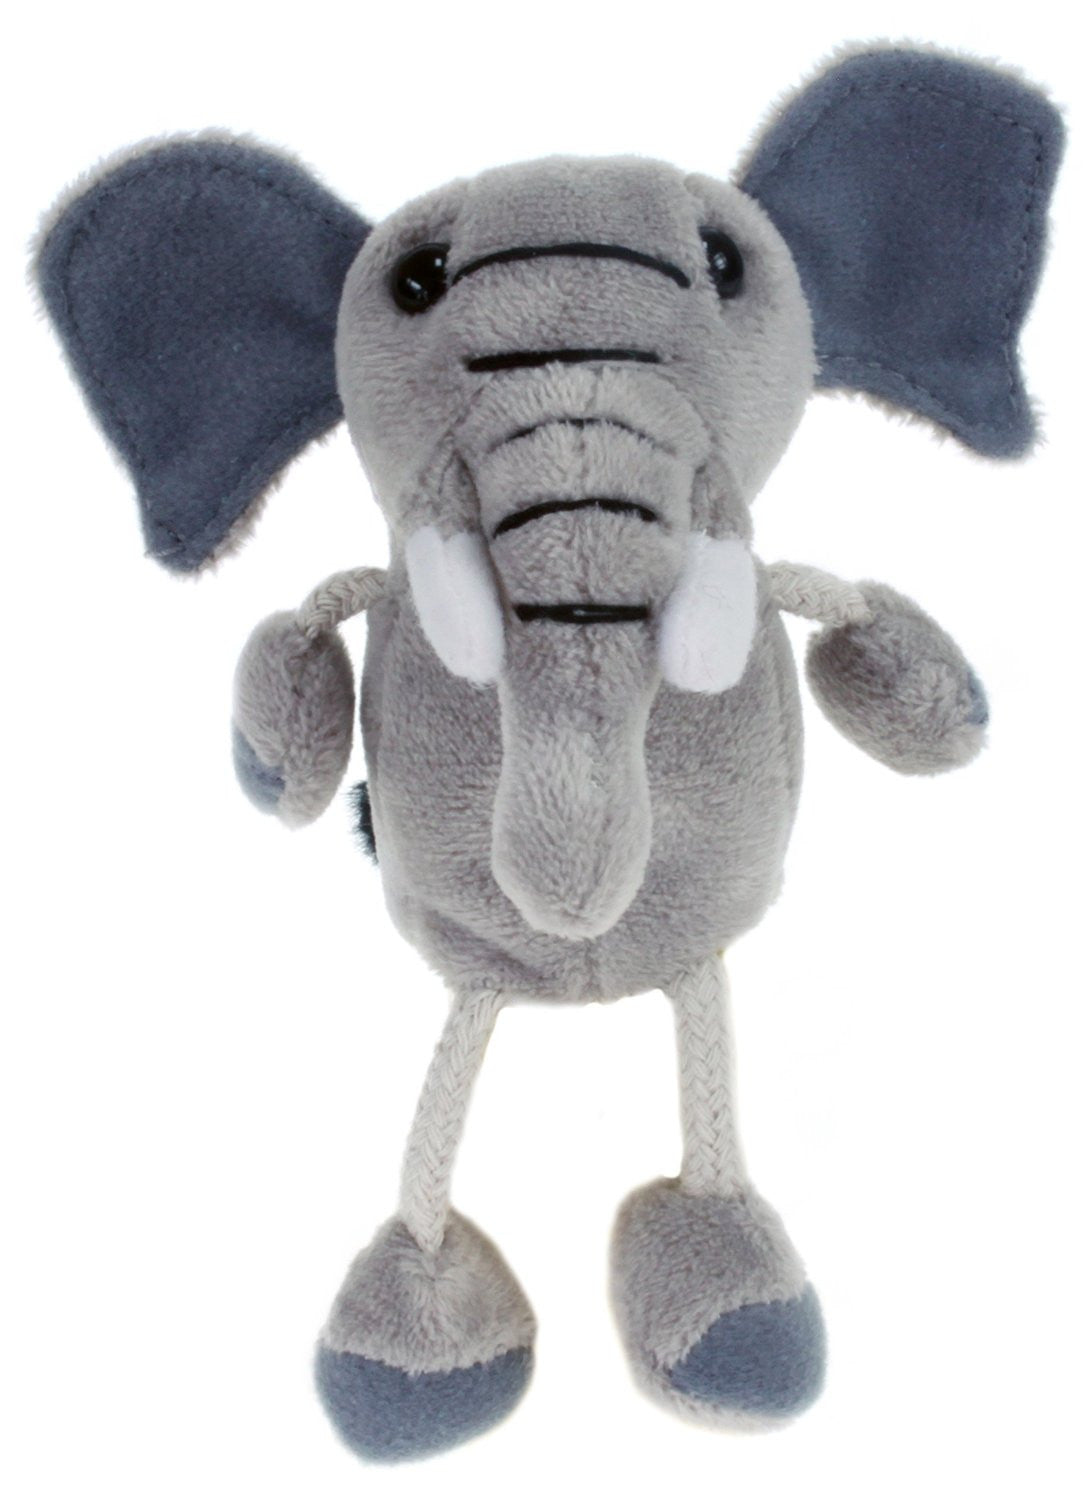 Elephant Finger Puppet by The Puppet Company - Off The Wall Toys and Gifts